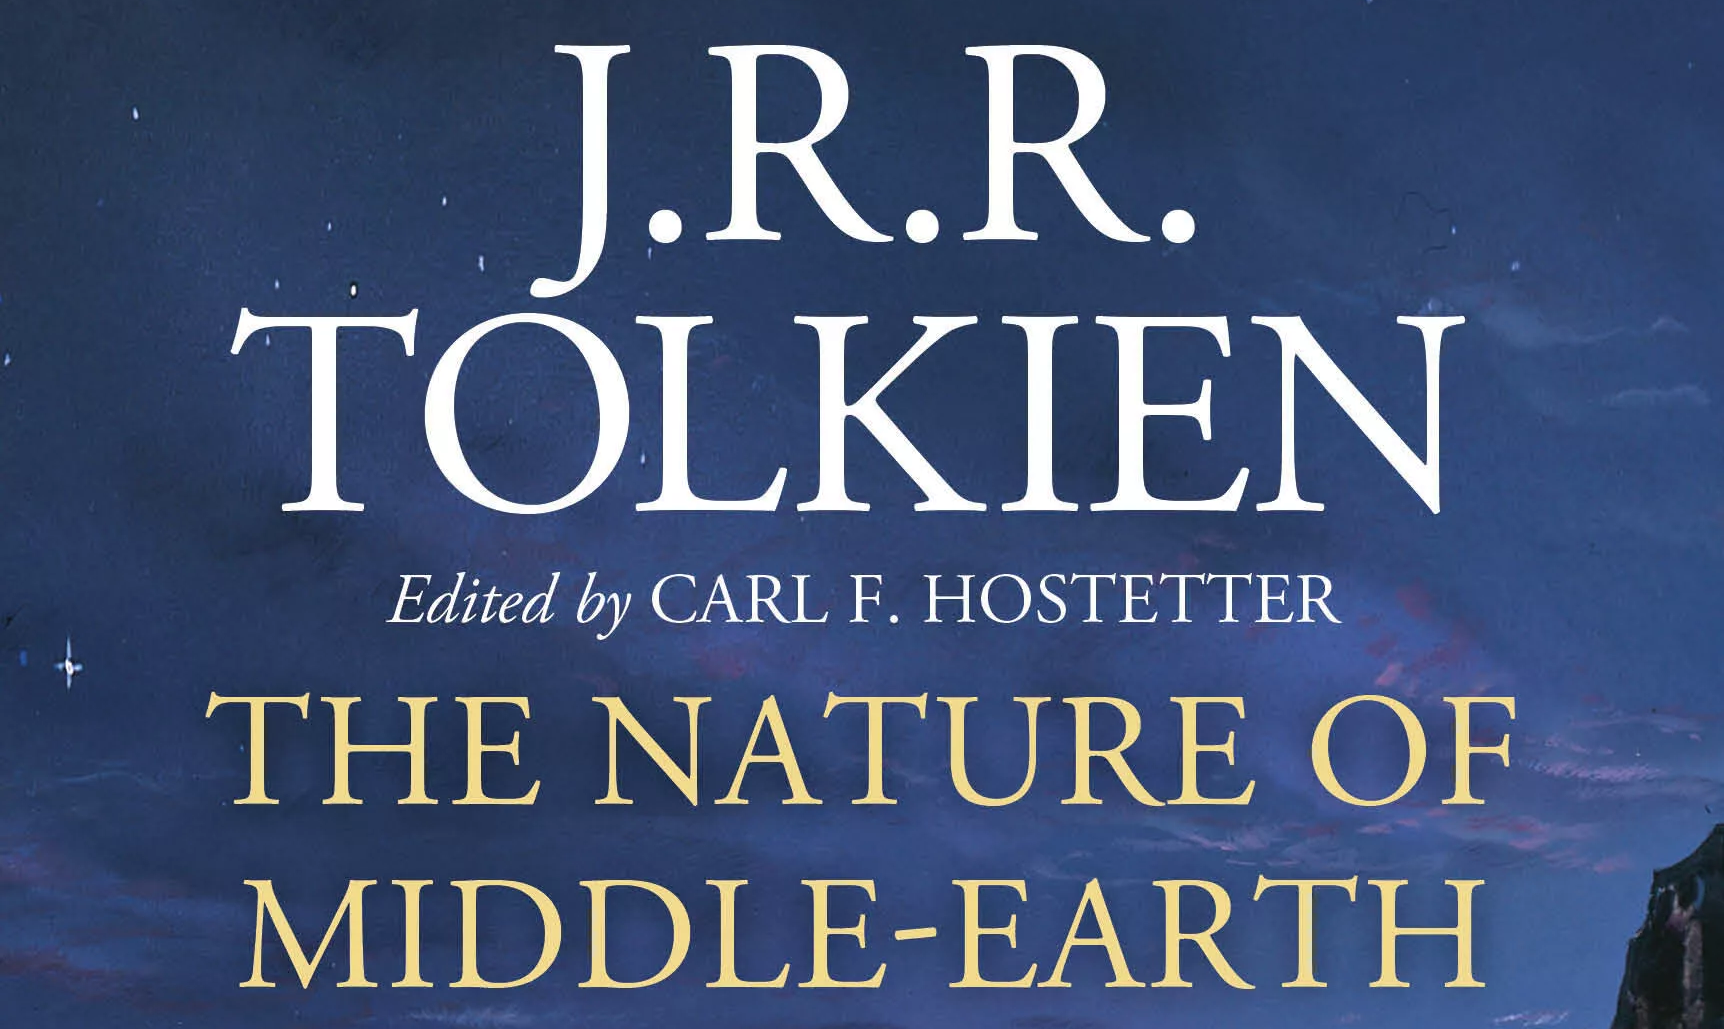 New Tolkien book: The Nature of Middle-earth